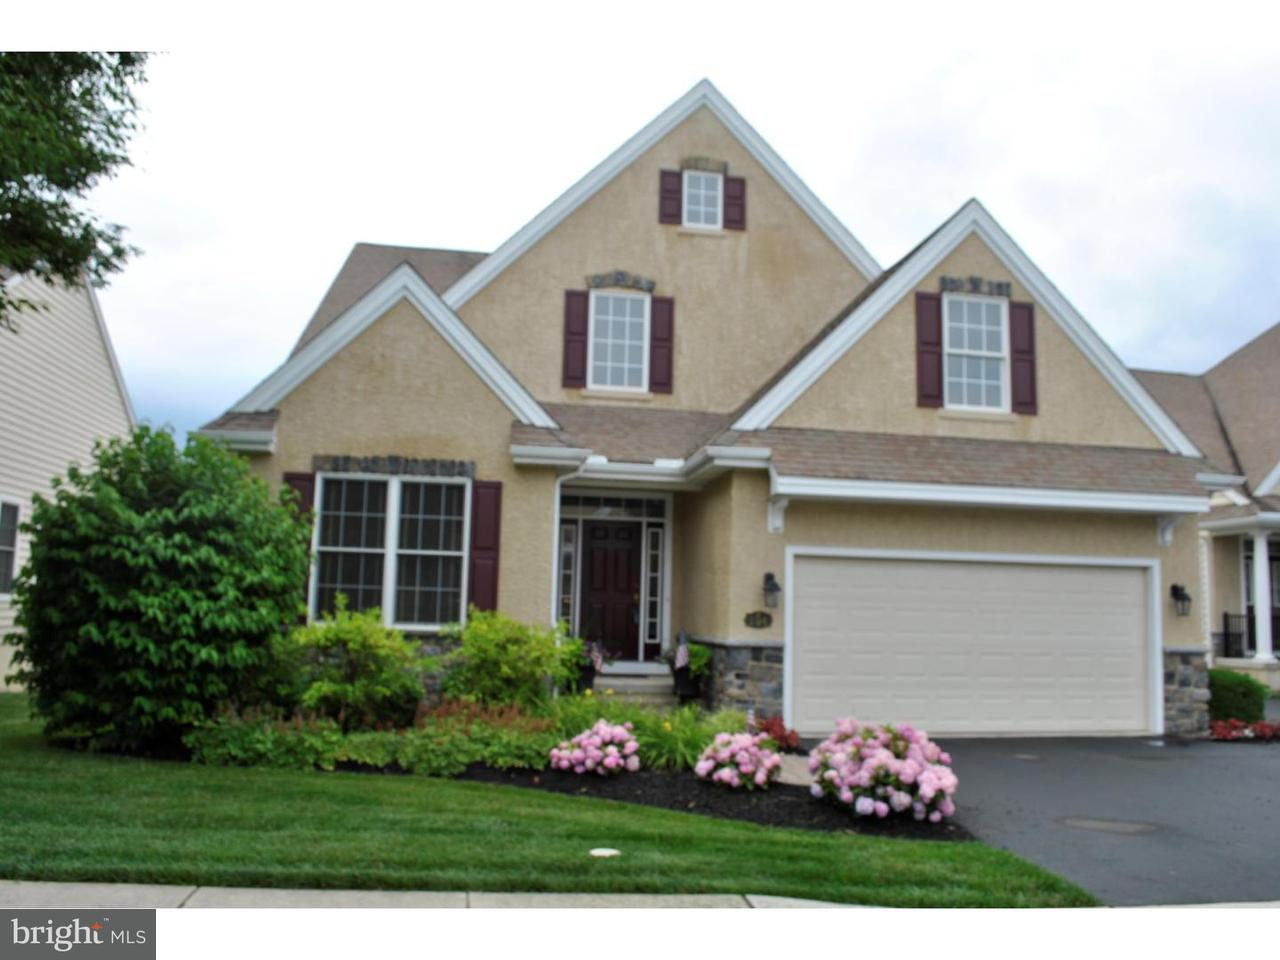 Single Family Home for Rent at 104 CORNWALL RD #111 Landenberg, Pennsylvania 19350 United States